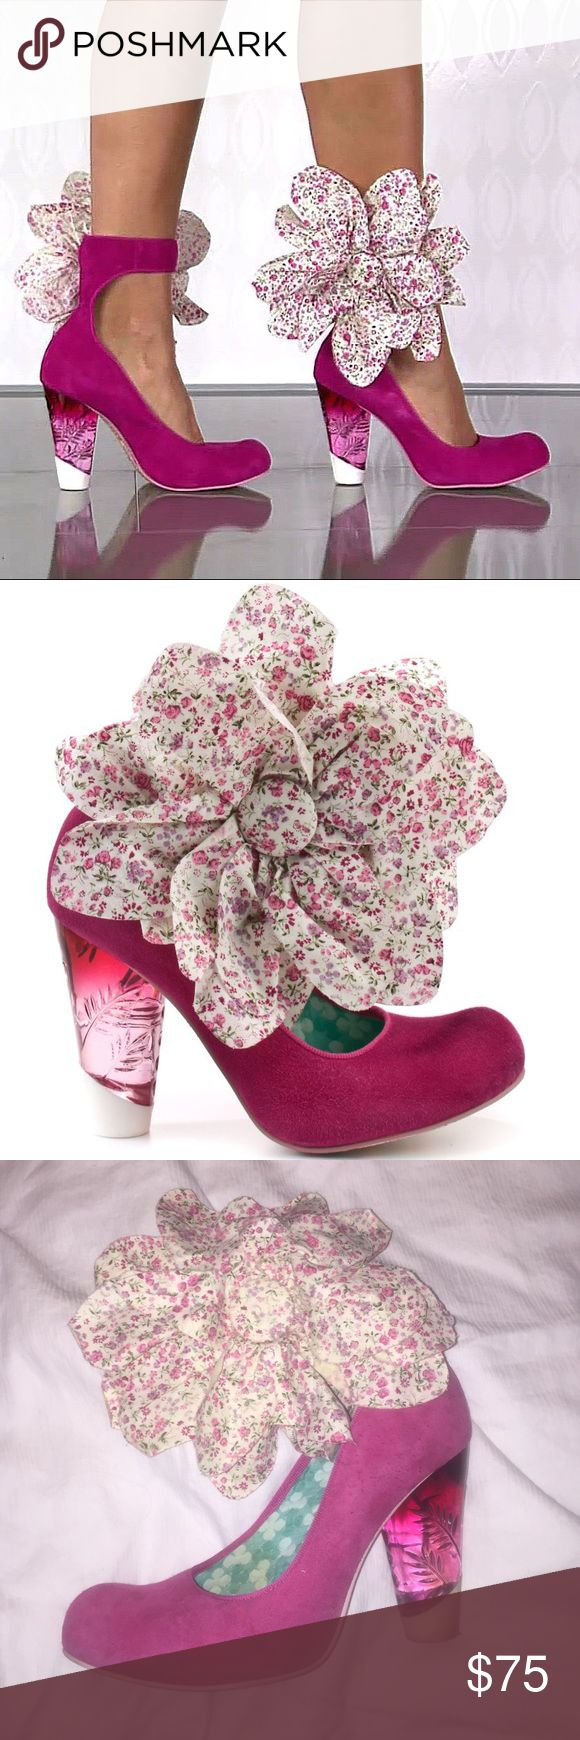 """Irregular Choice Specialzo Floral Pink suede Heels This is an amazing pair of Irregular Choice Specialzo pink suede heels. Size 7 heel 3.5"""" wraps around the ankle and closes with Velcro. Good condition. Irregular choice Shoes Heels"""